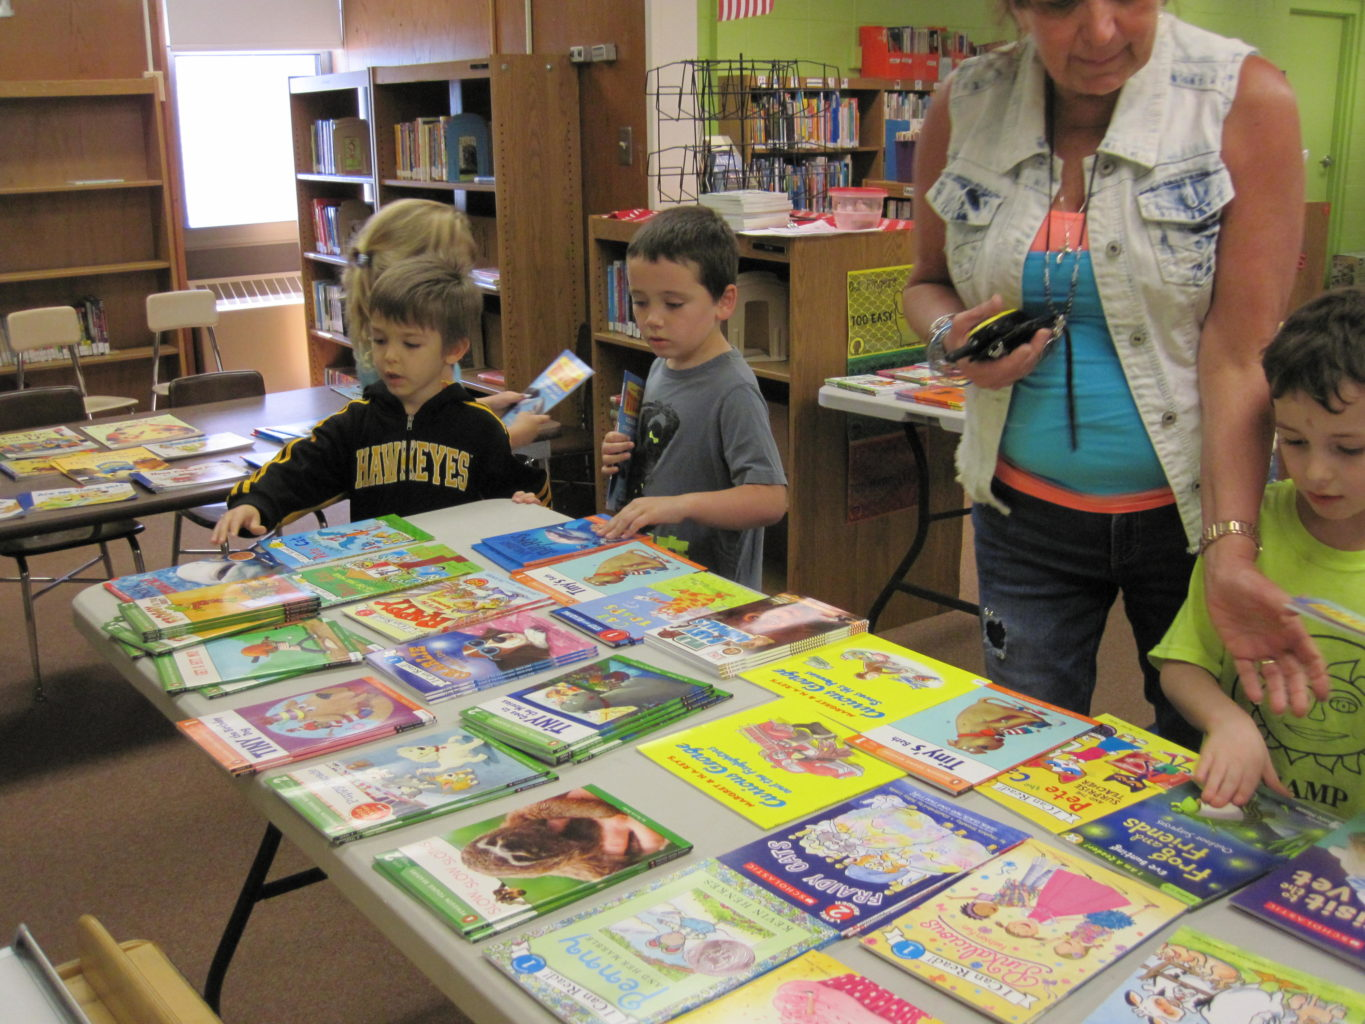 Boys looking at table of books